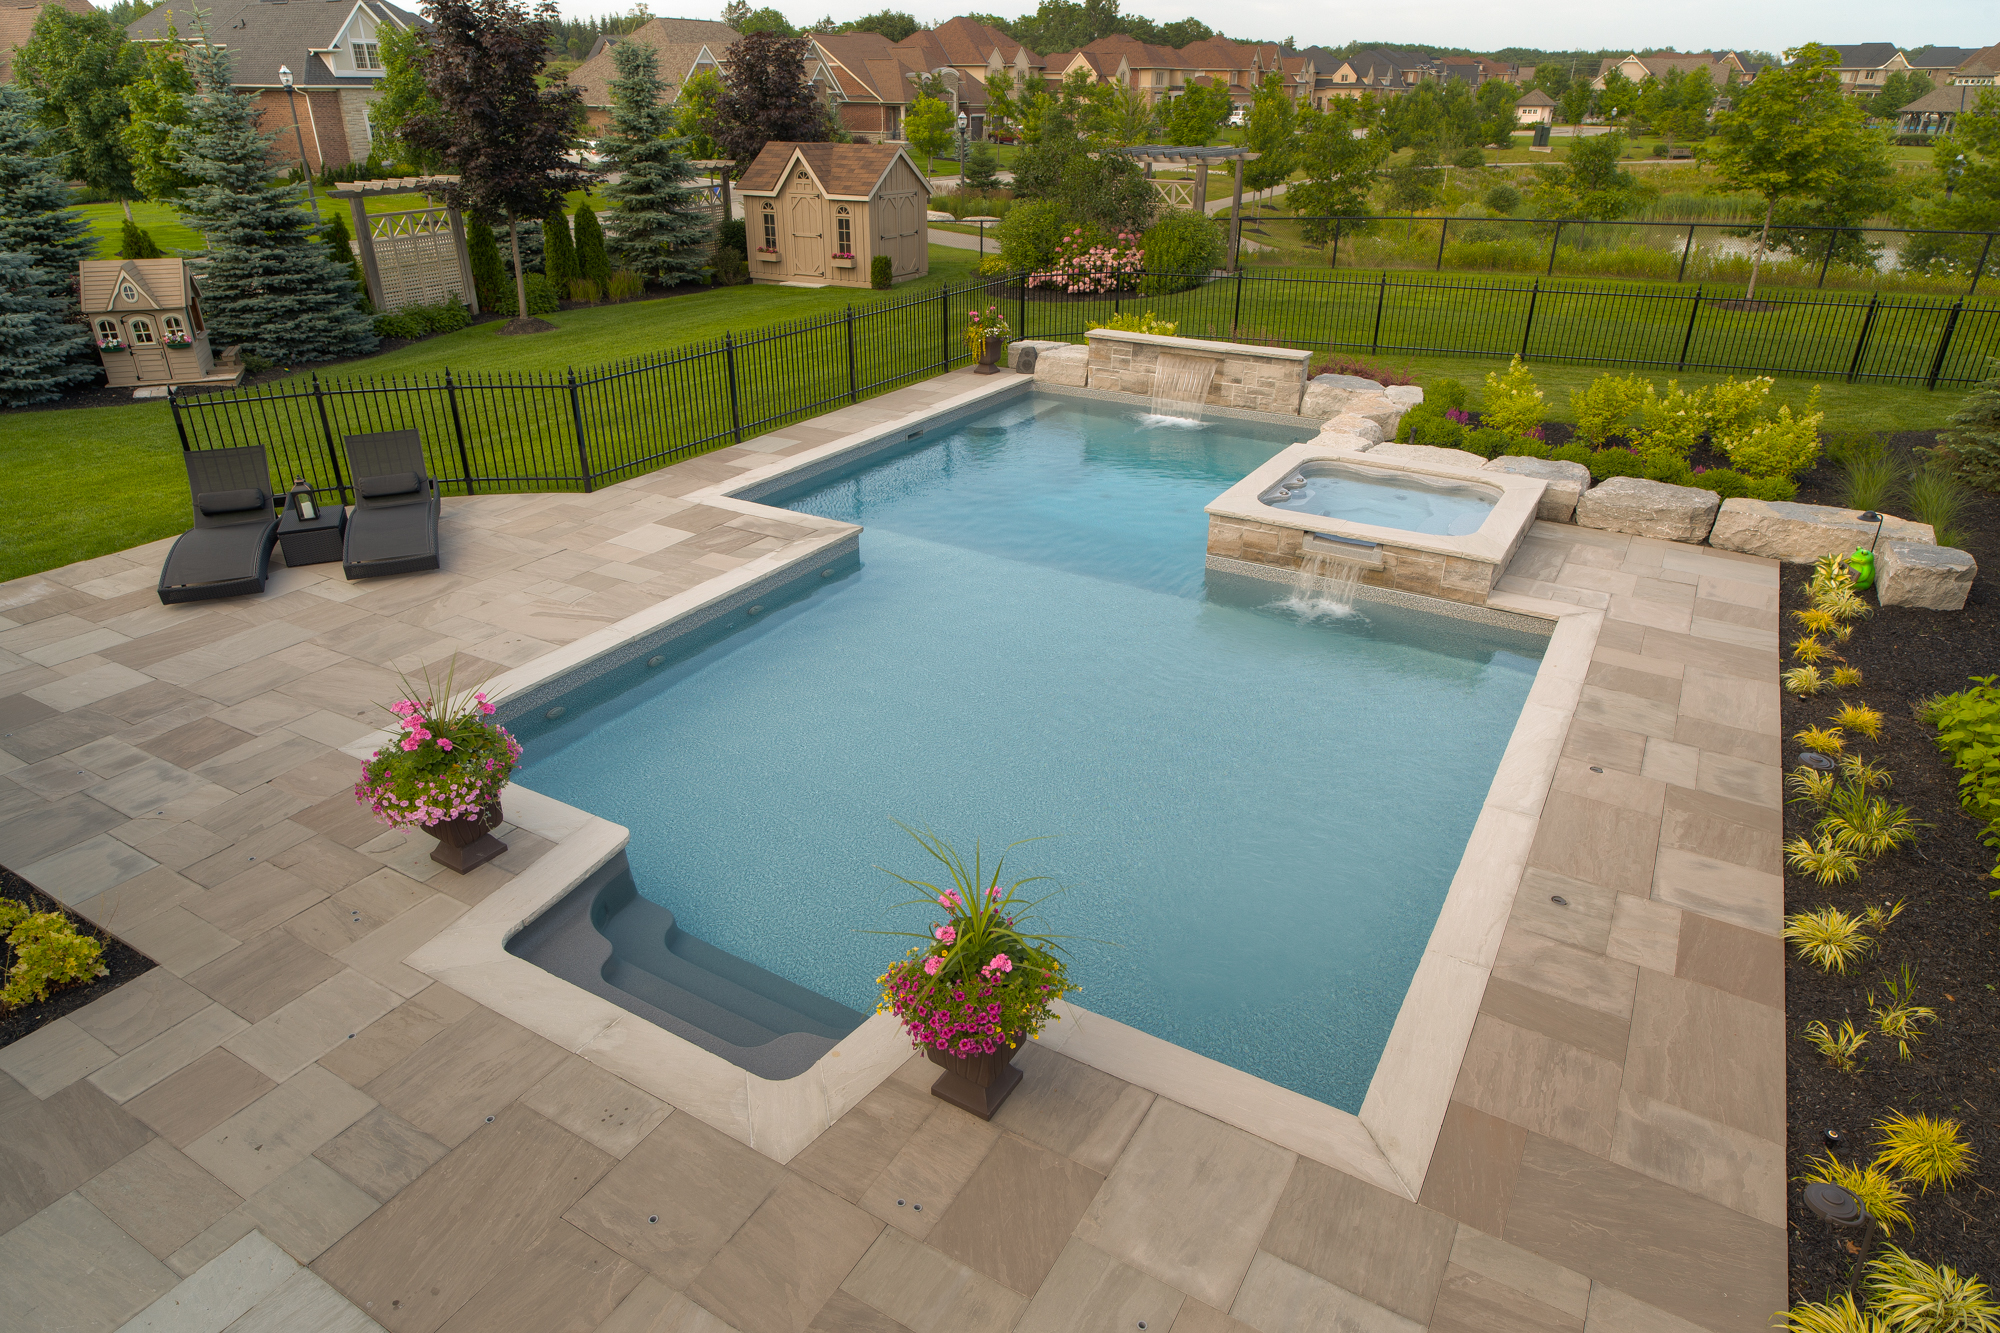 An inground vinyl swimming pool, installed in a residential backyard